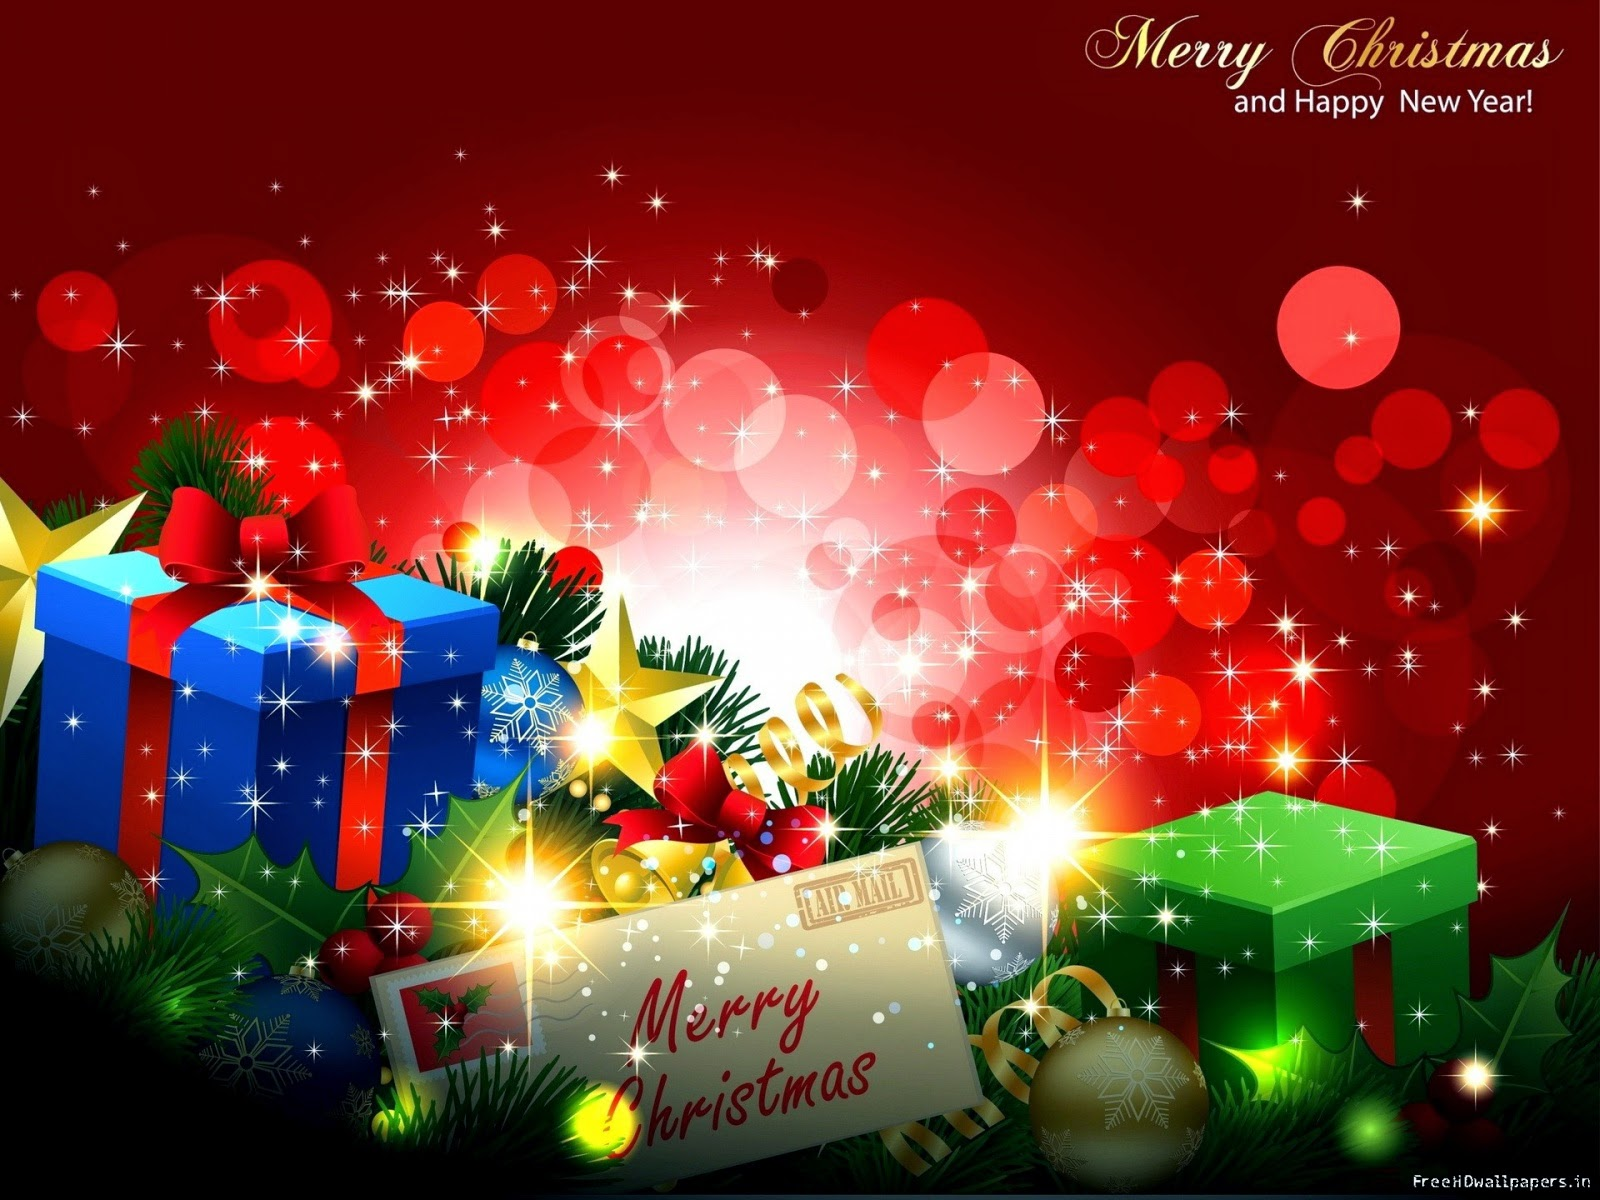 Merry Christmas And Happy New Year Wallpaper Sf Wallpaper